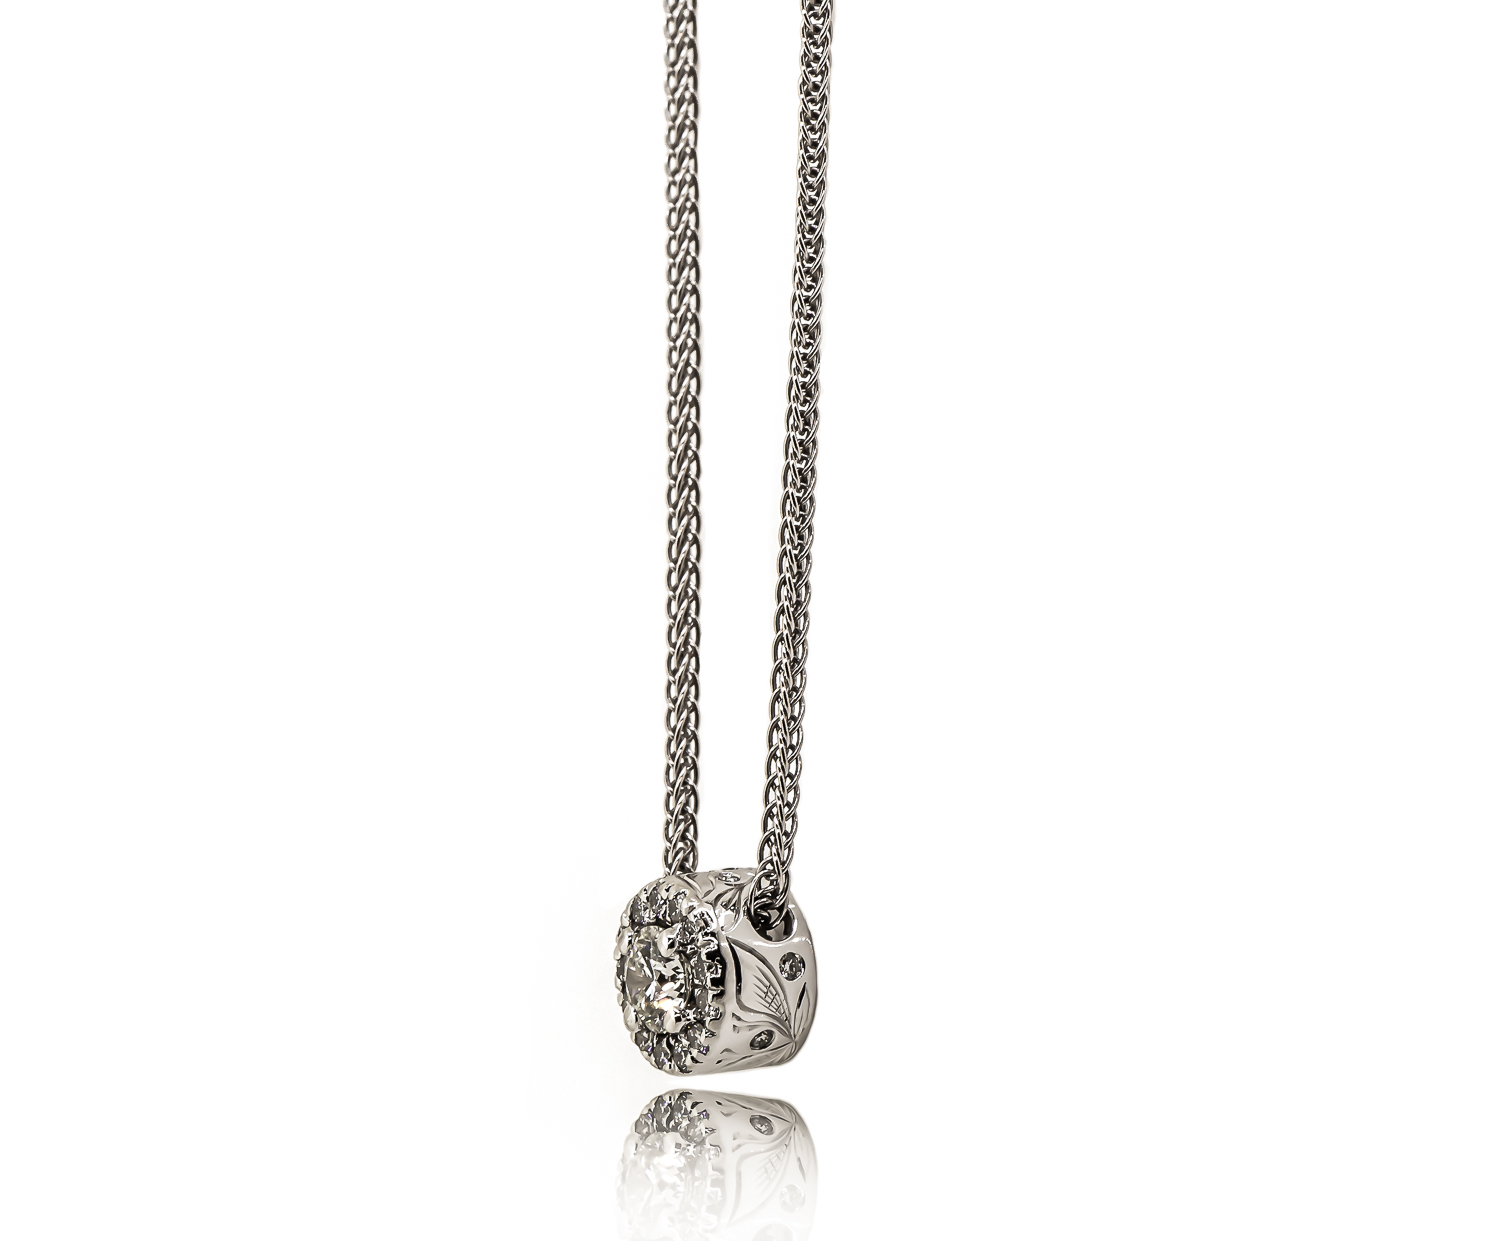 cabral pendant with engraving (1 of 1).jpg